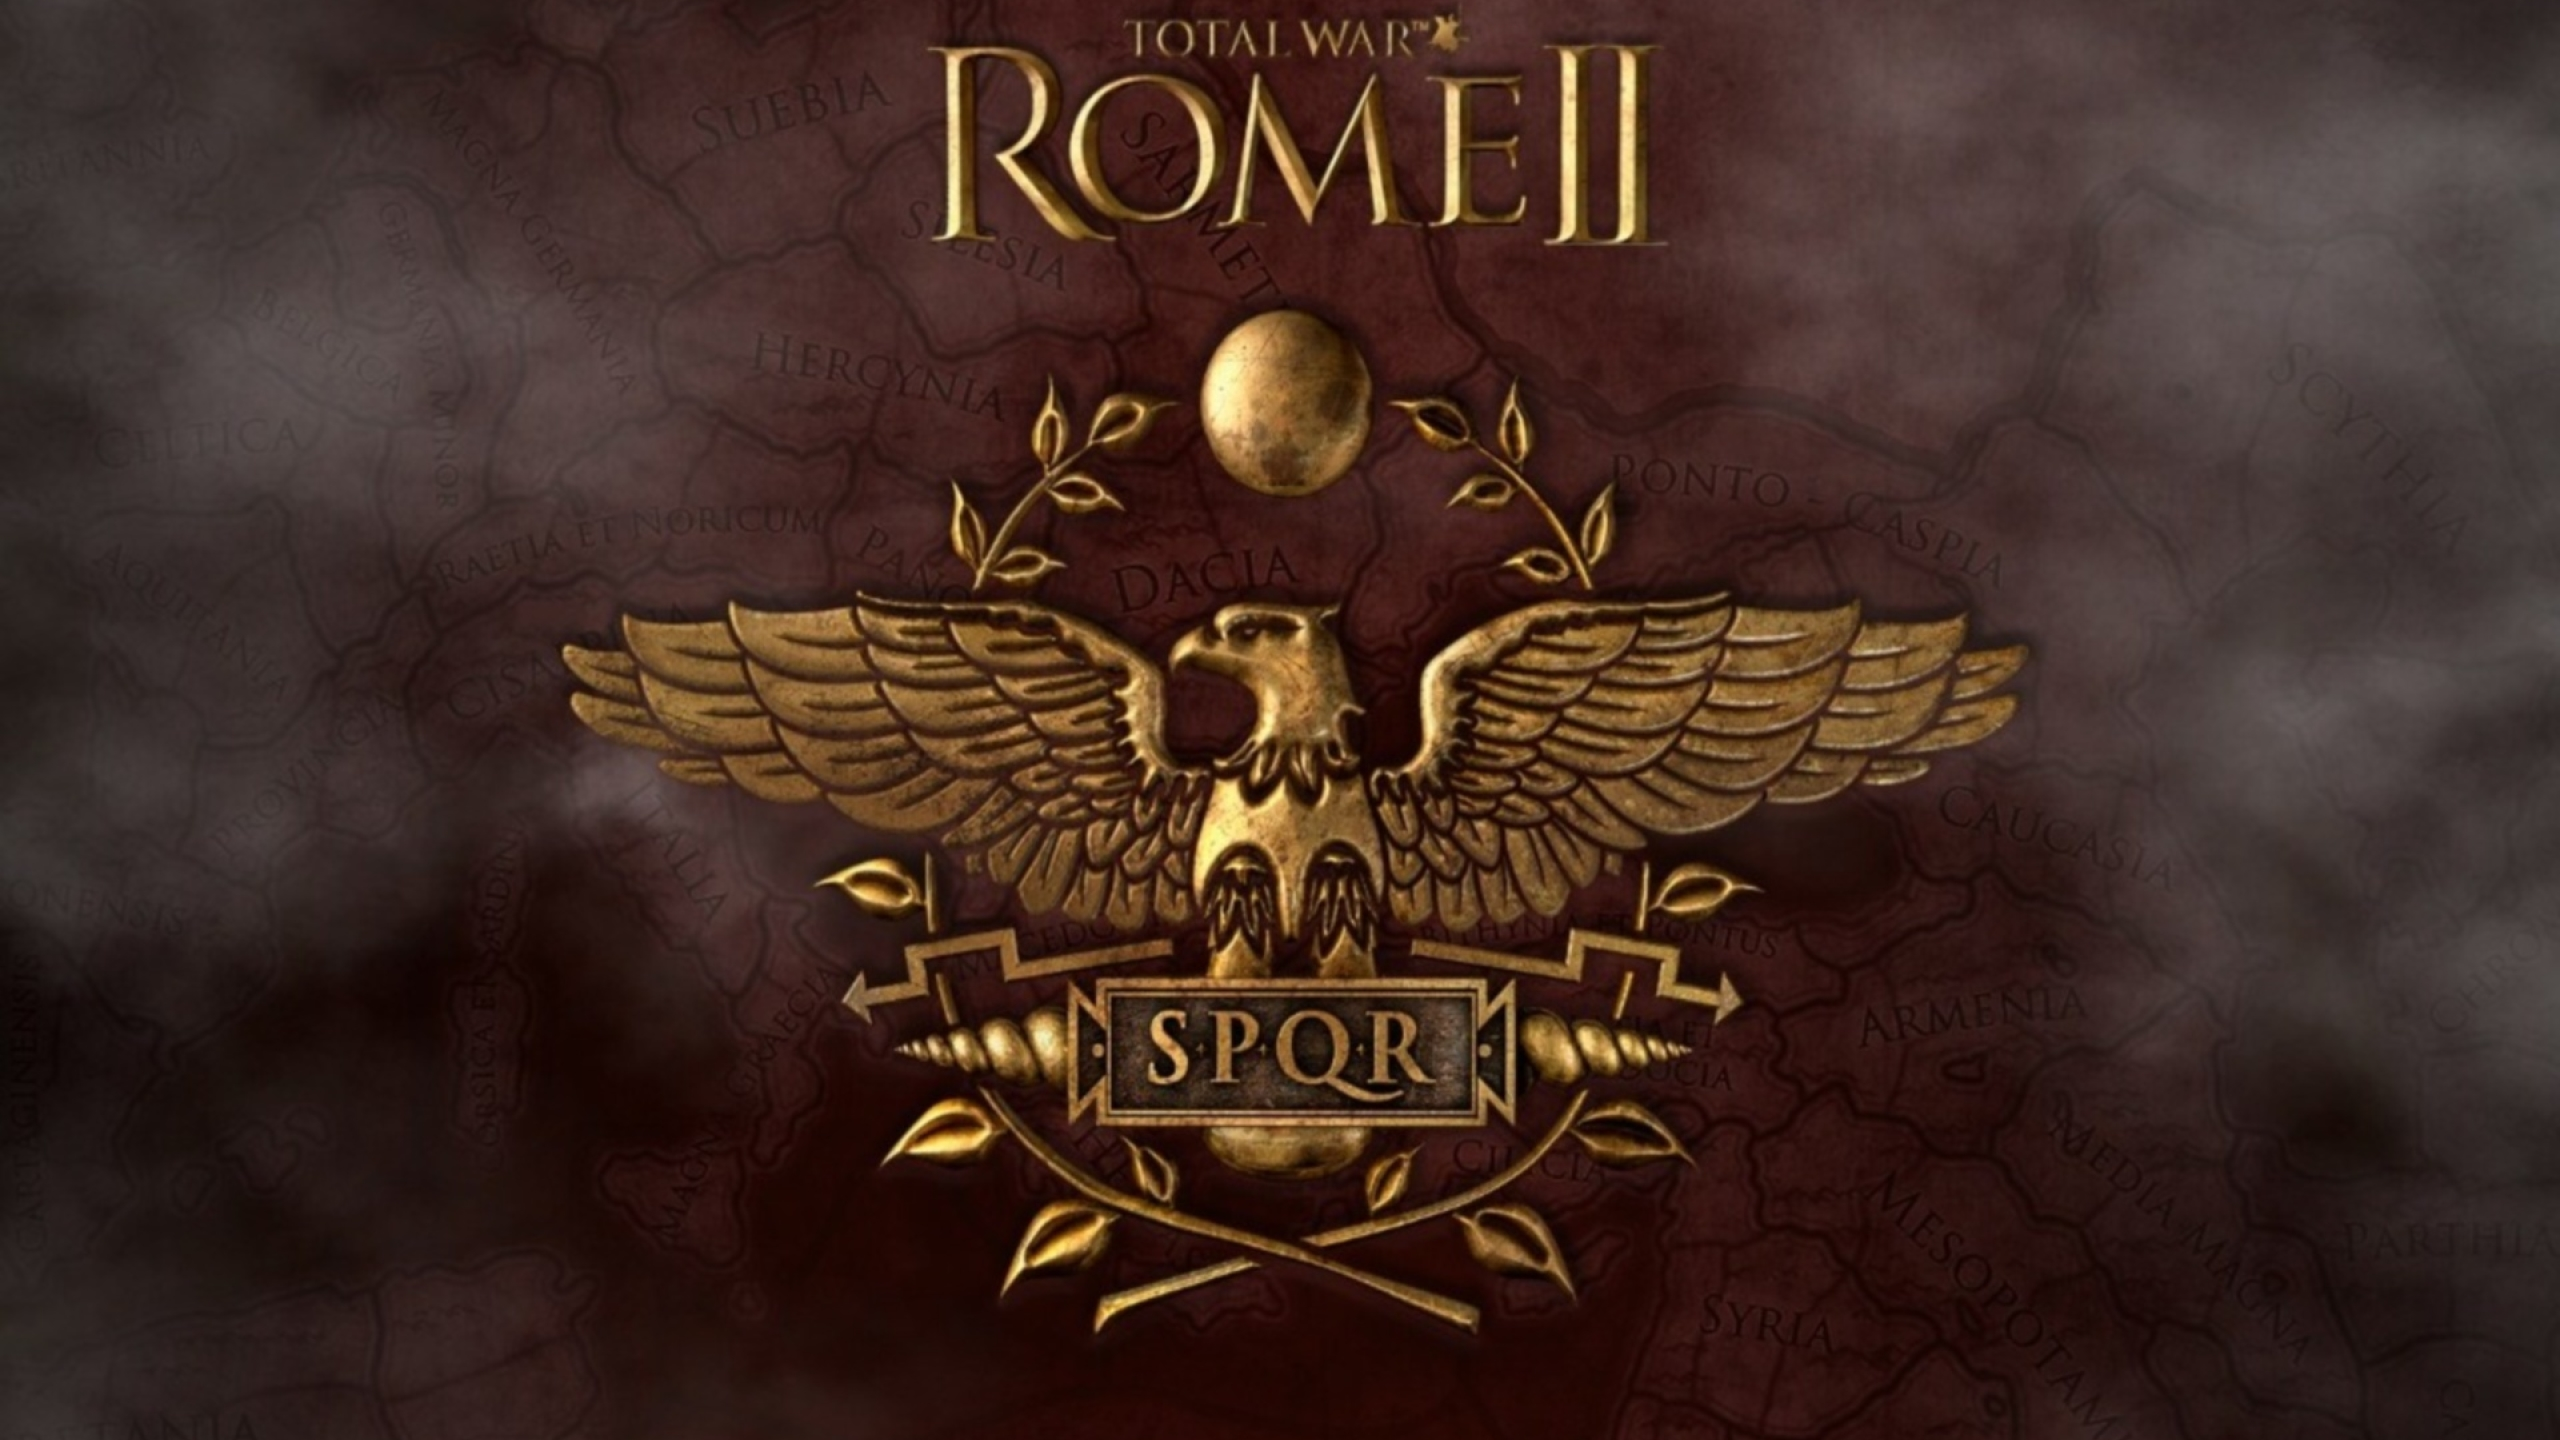 2560x1440 Total War Rome 2 Rome Ii Total War 1440p Resolution